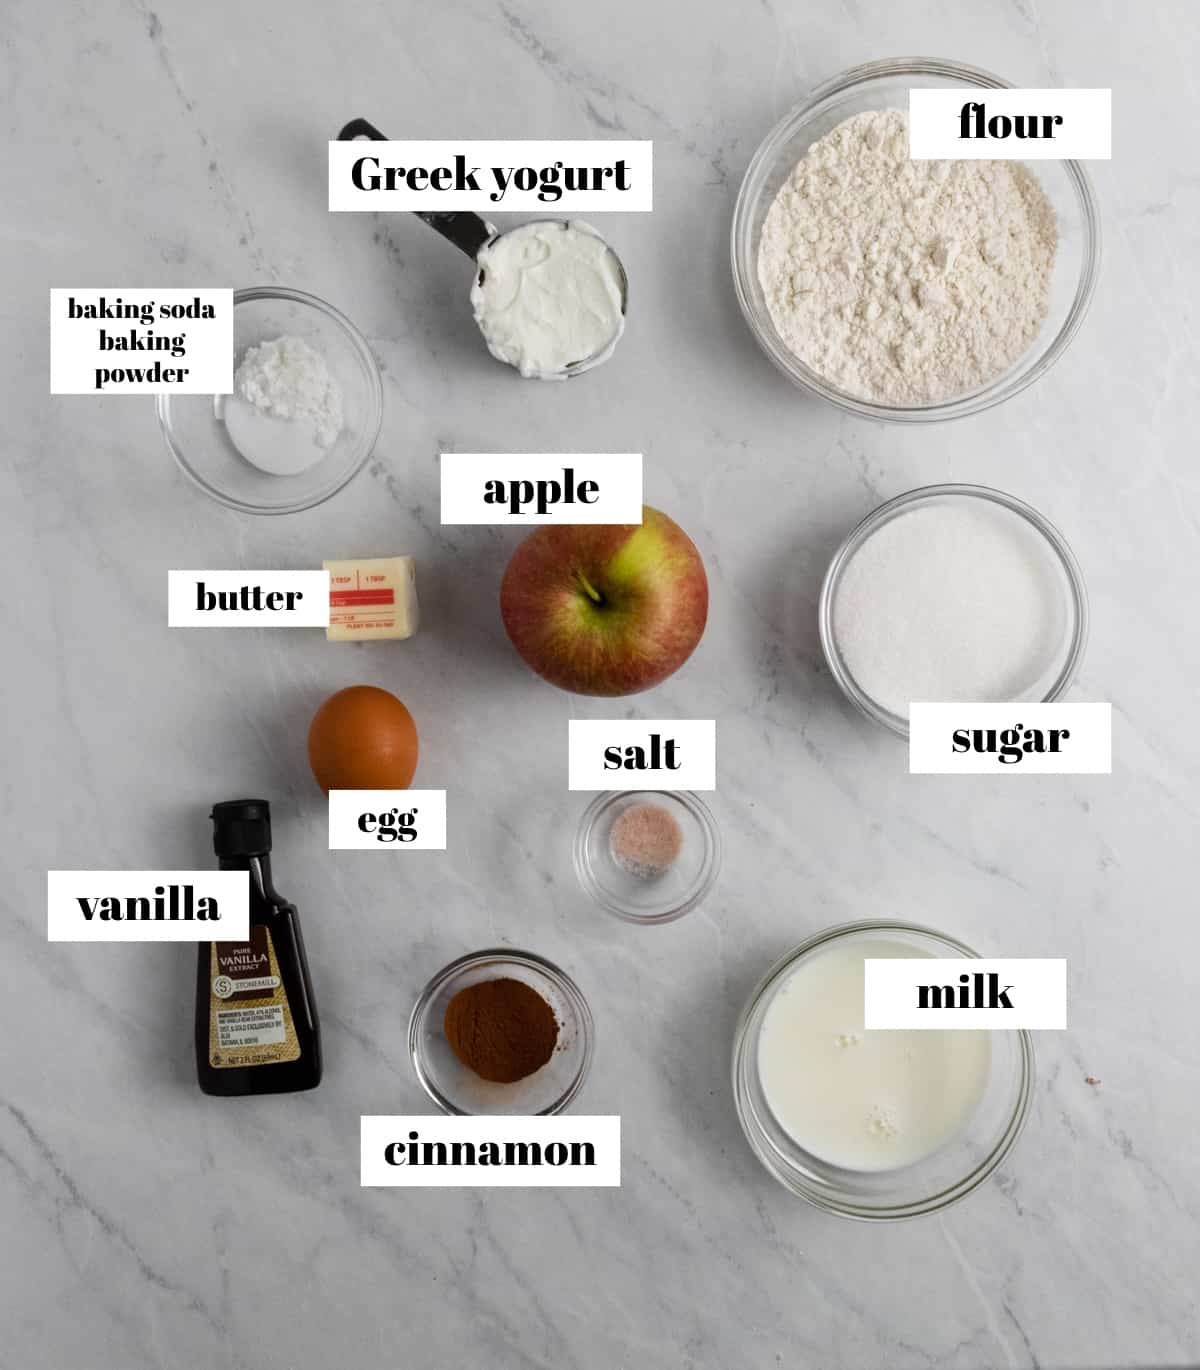 Flour, apple, sugar, cinnamon and other ingredients labeled on counter.